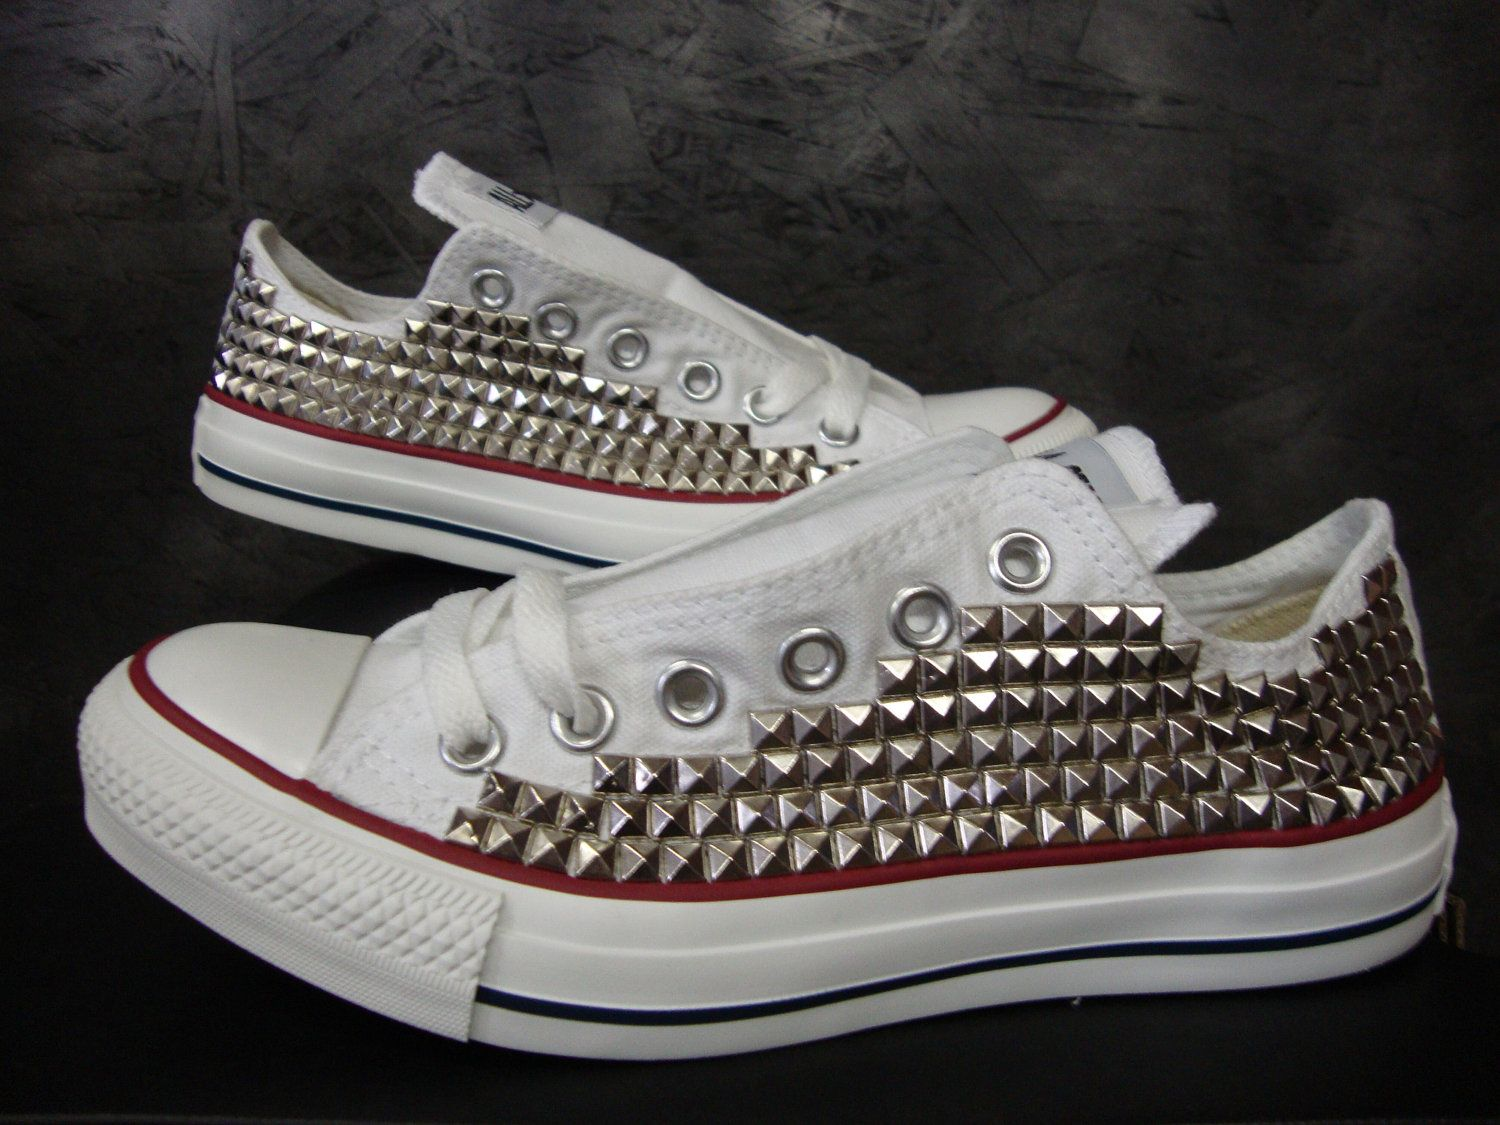 f9755cc407d0 Custom Studded Pyramid Converse Shoes (ONE SIDED SHOES).  150.00 ...